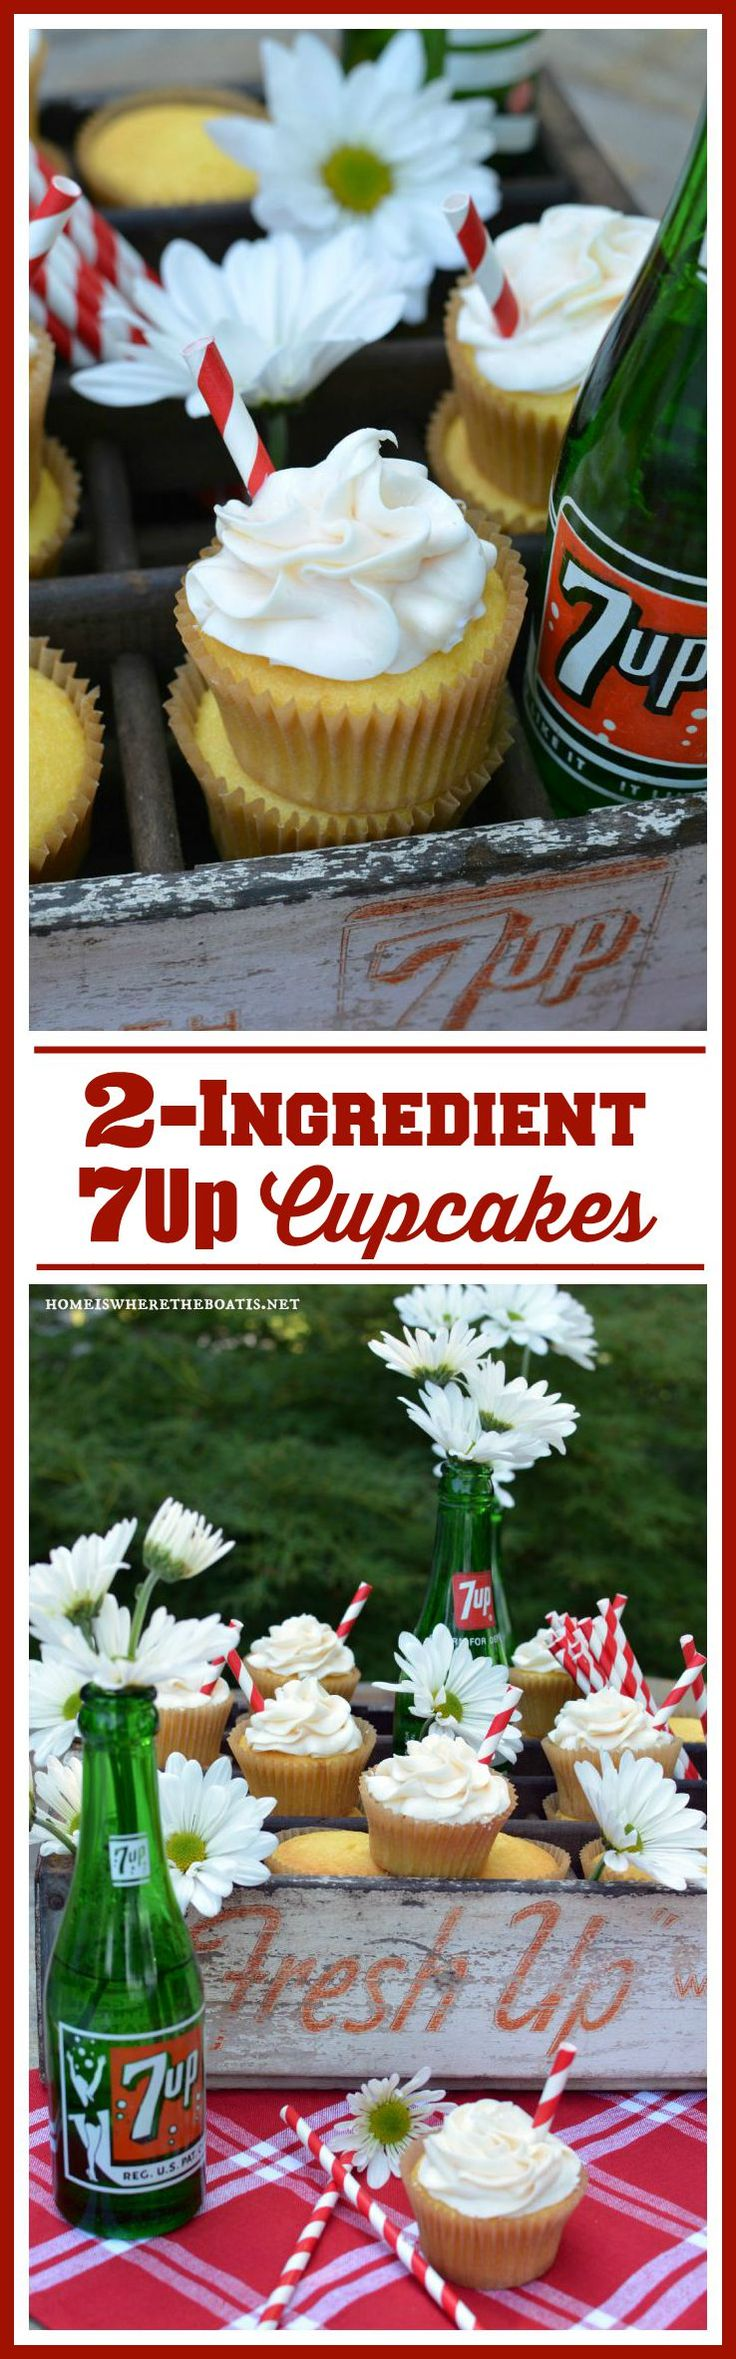 2-Ingredient 7 Up Cupcakes! Easy lemon cupcakes, ideal for when you need a short cut and are too busy to bake! No one would ever guess you whipped these together in 5 minutes, using only 2-ingredients~ 3 if you count the straws!